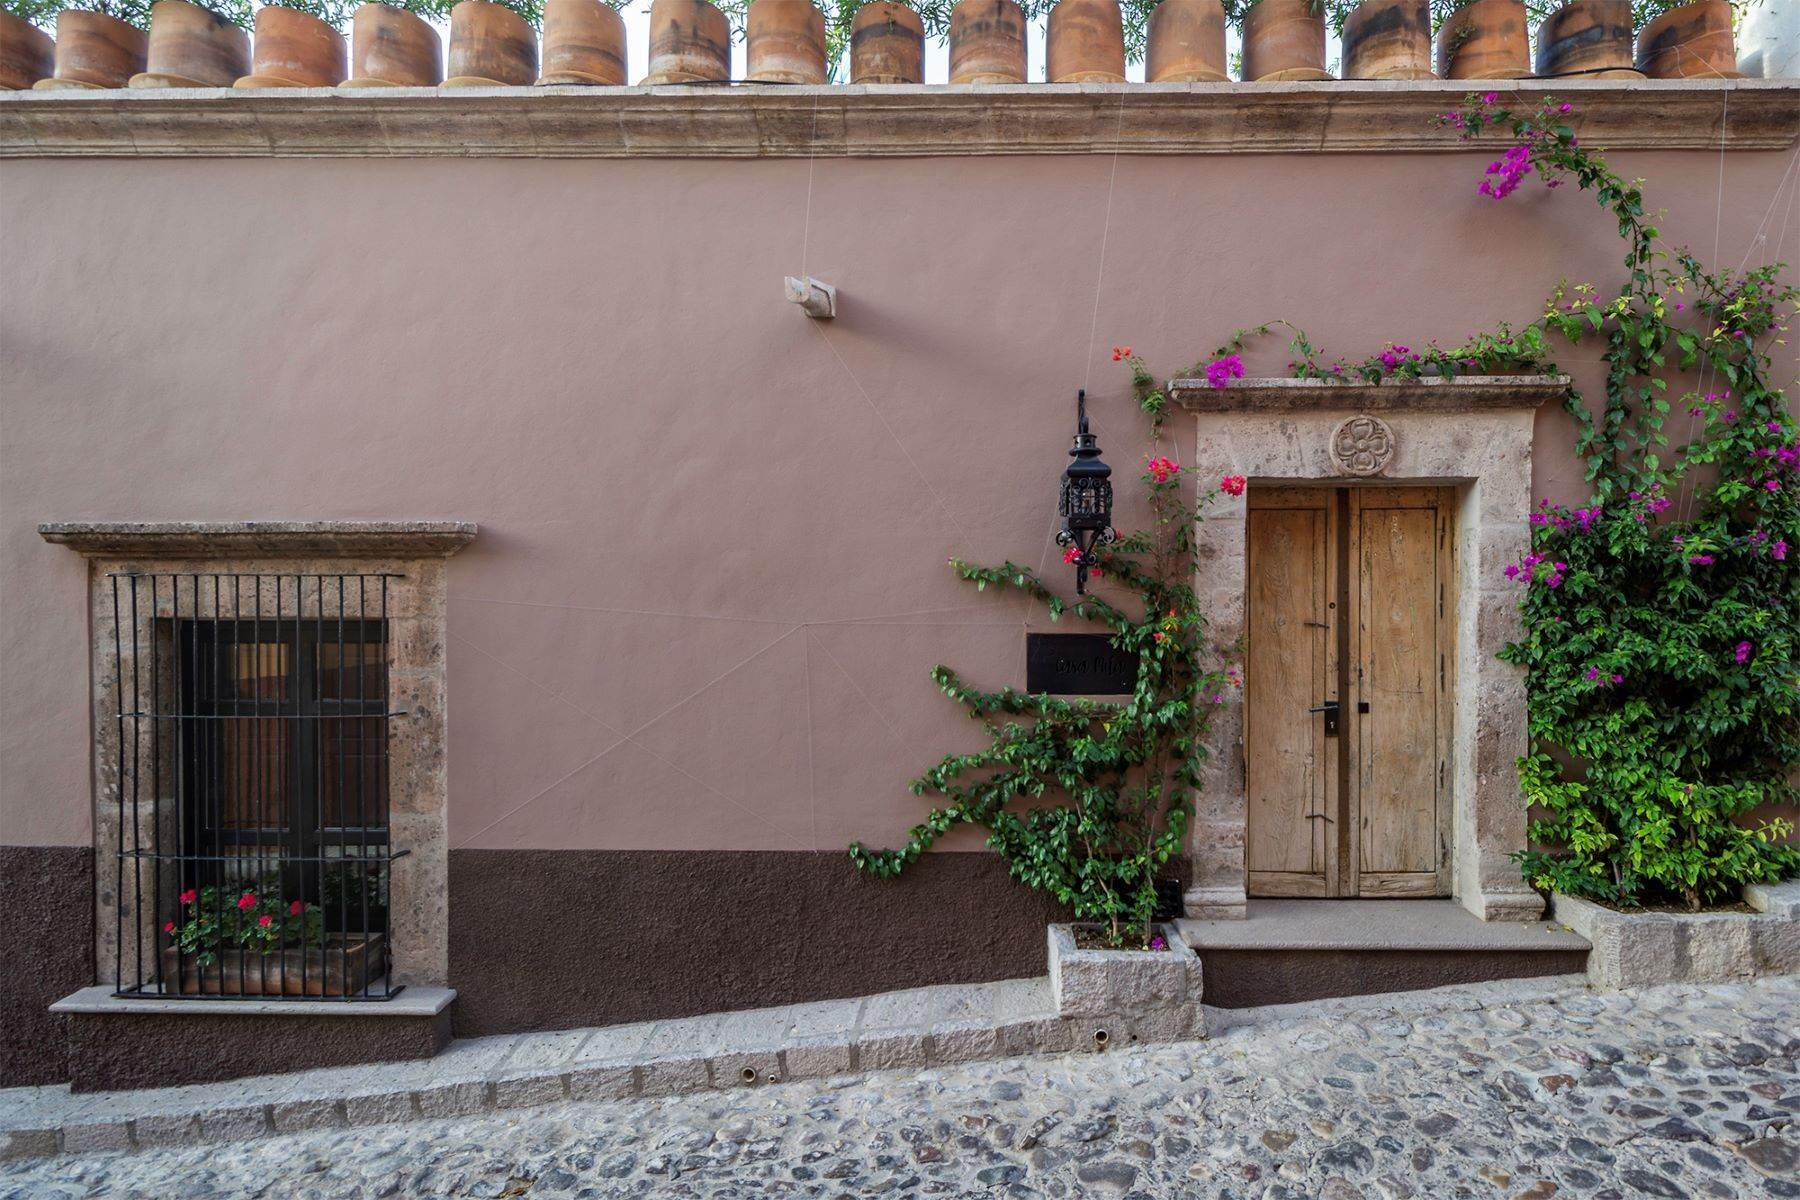 Property for Sale at Casa Mila Garita 2 San Miguel De Allende, Guanajuato 37700 Mexico